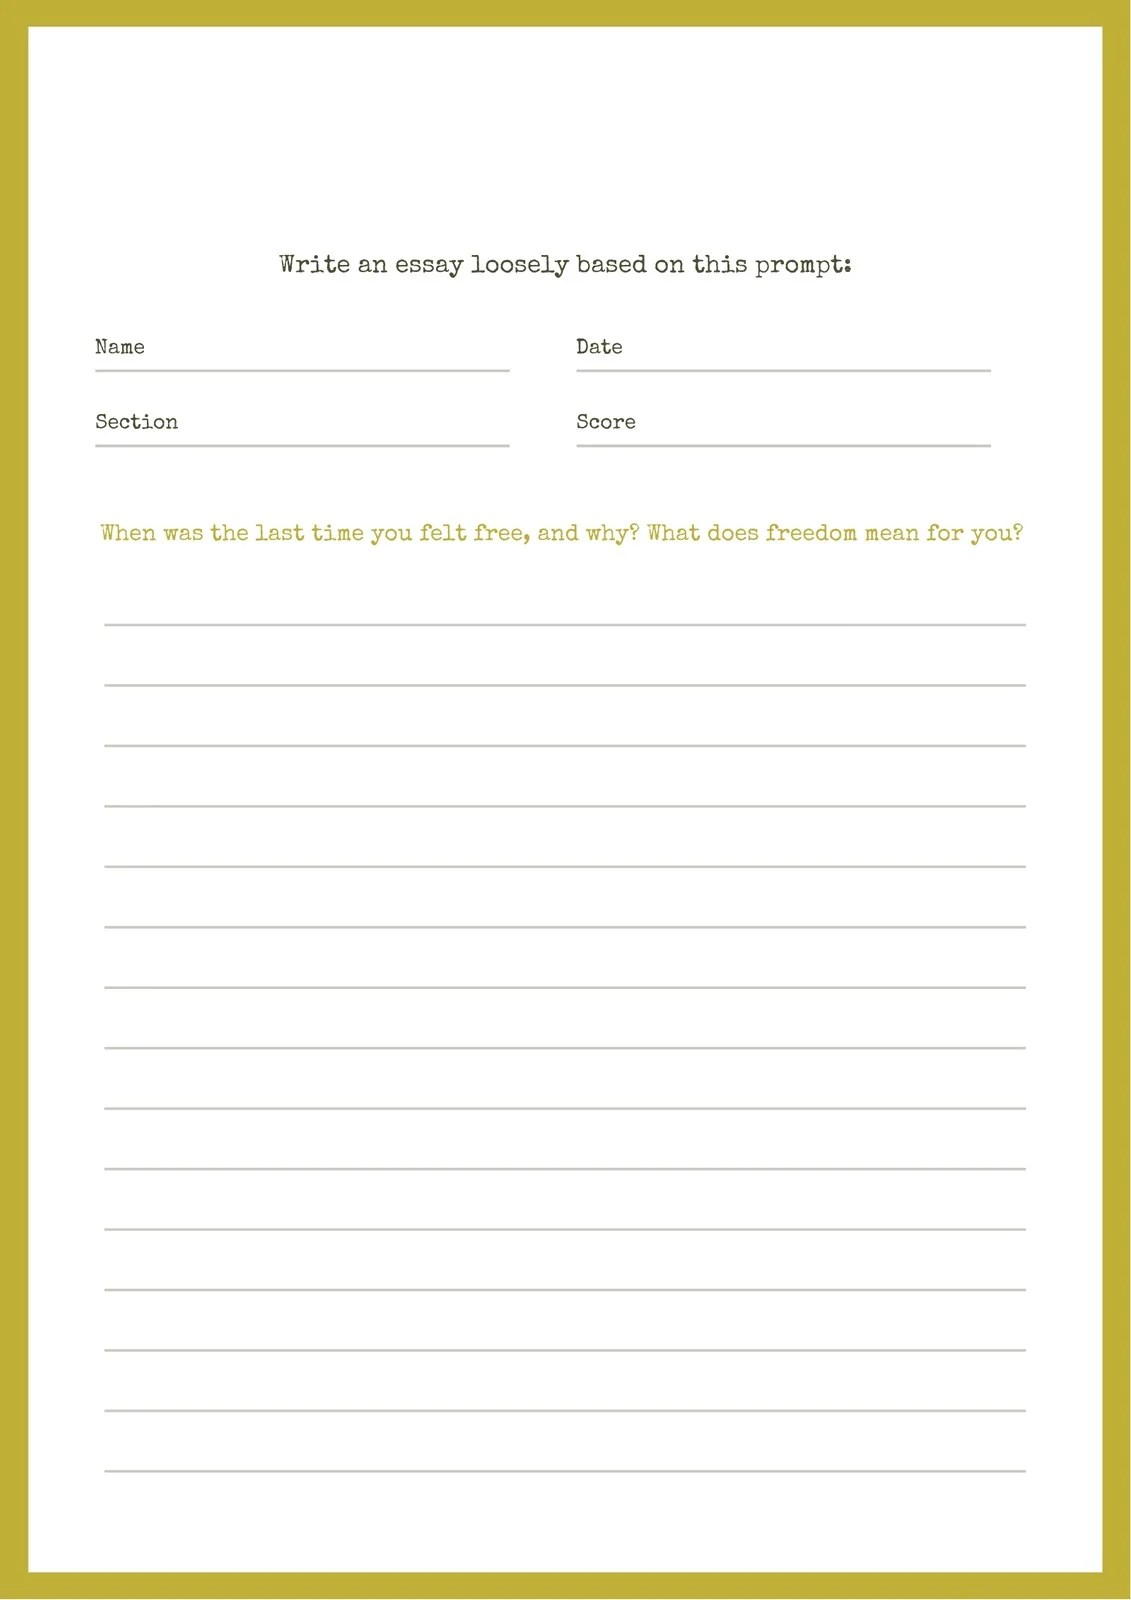 Yellow Essay Writing Prompt Worksheet